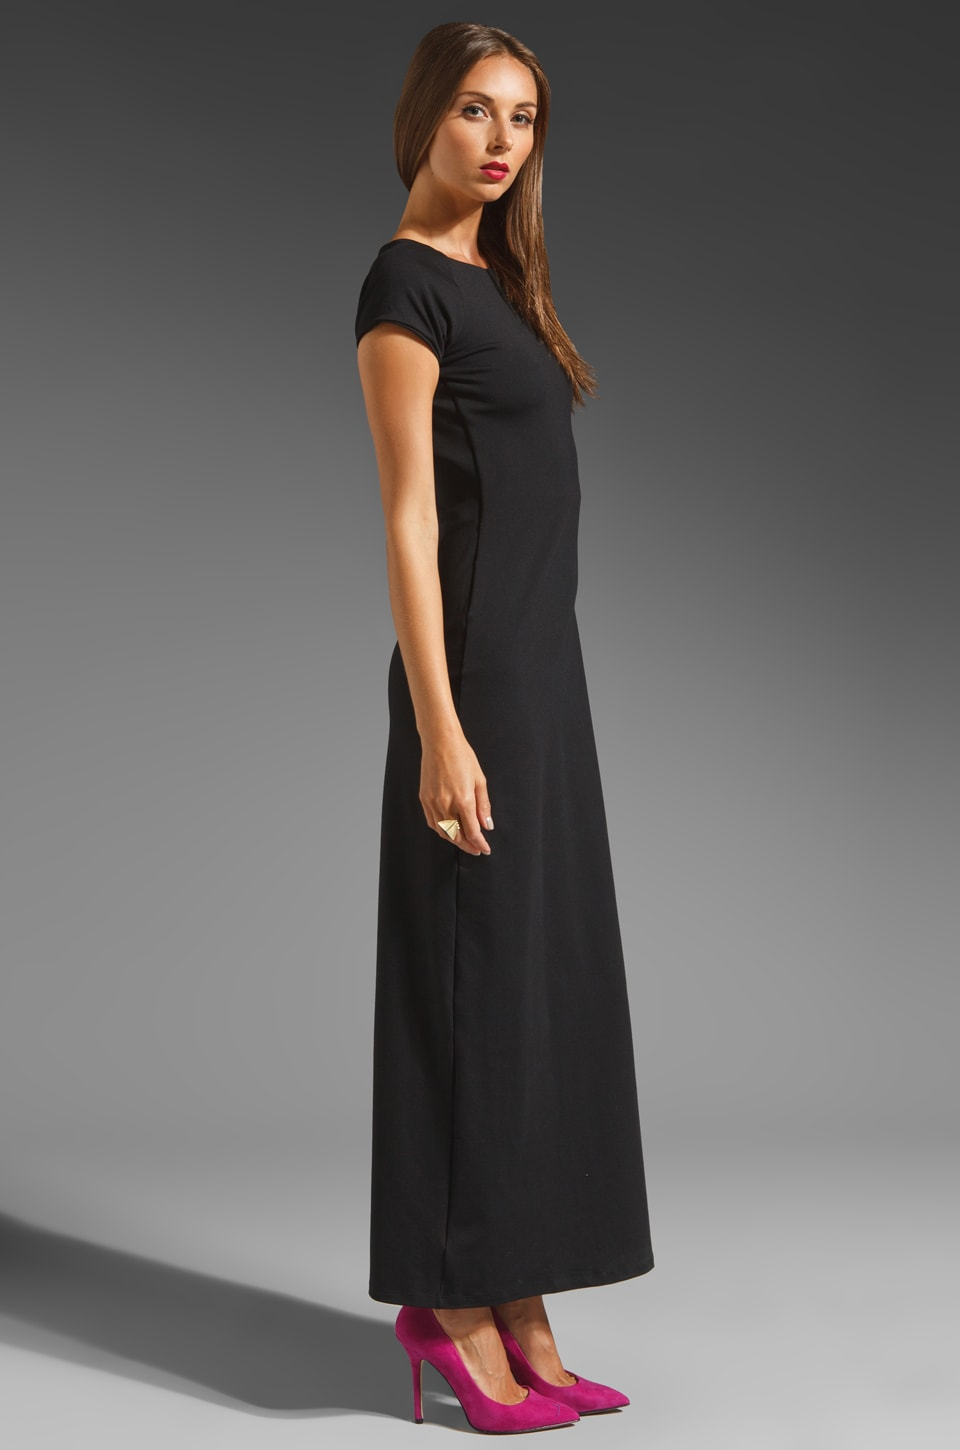 Susana Monaco April Maxi in Black